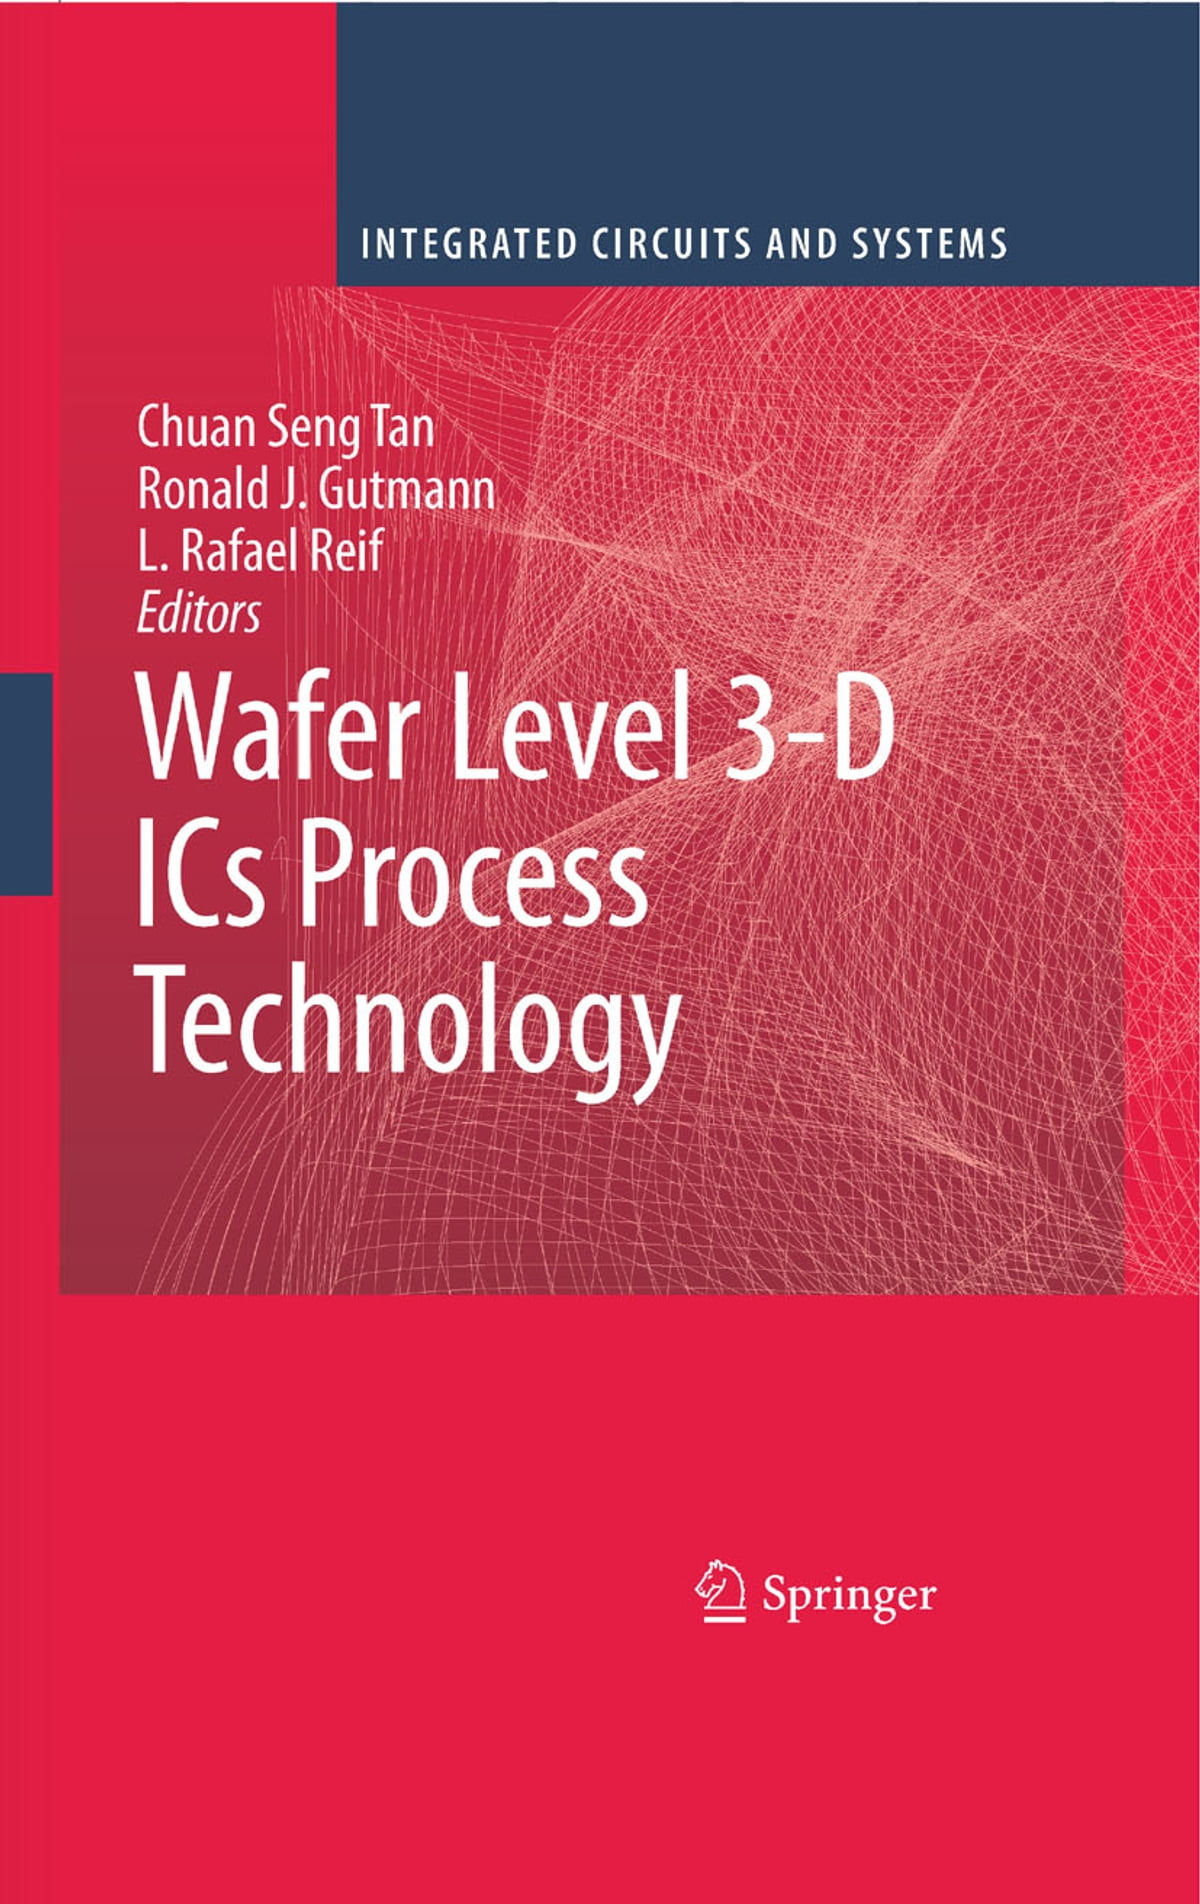 Wafer Level 3 D Ics Process Technology Ebook By 9780387765341 Image Picture Of Integrated Circuits Rakuten Kobo